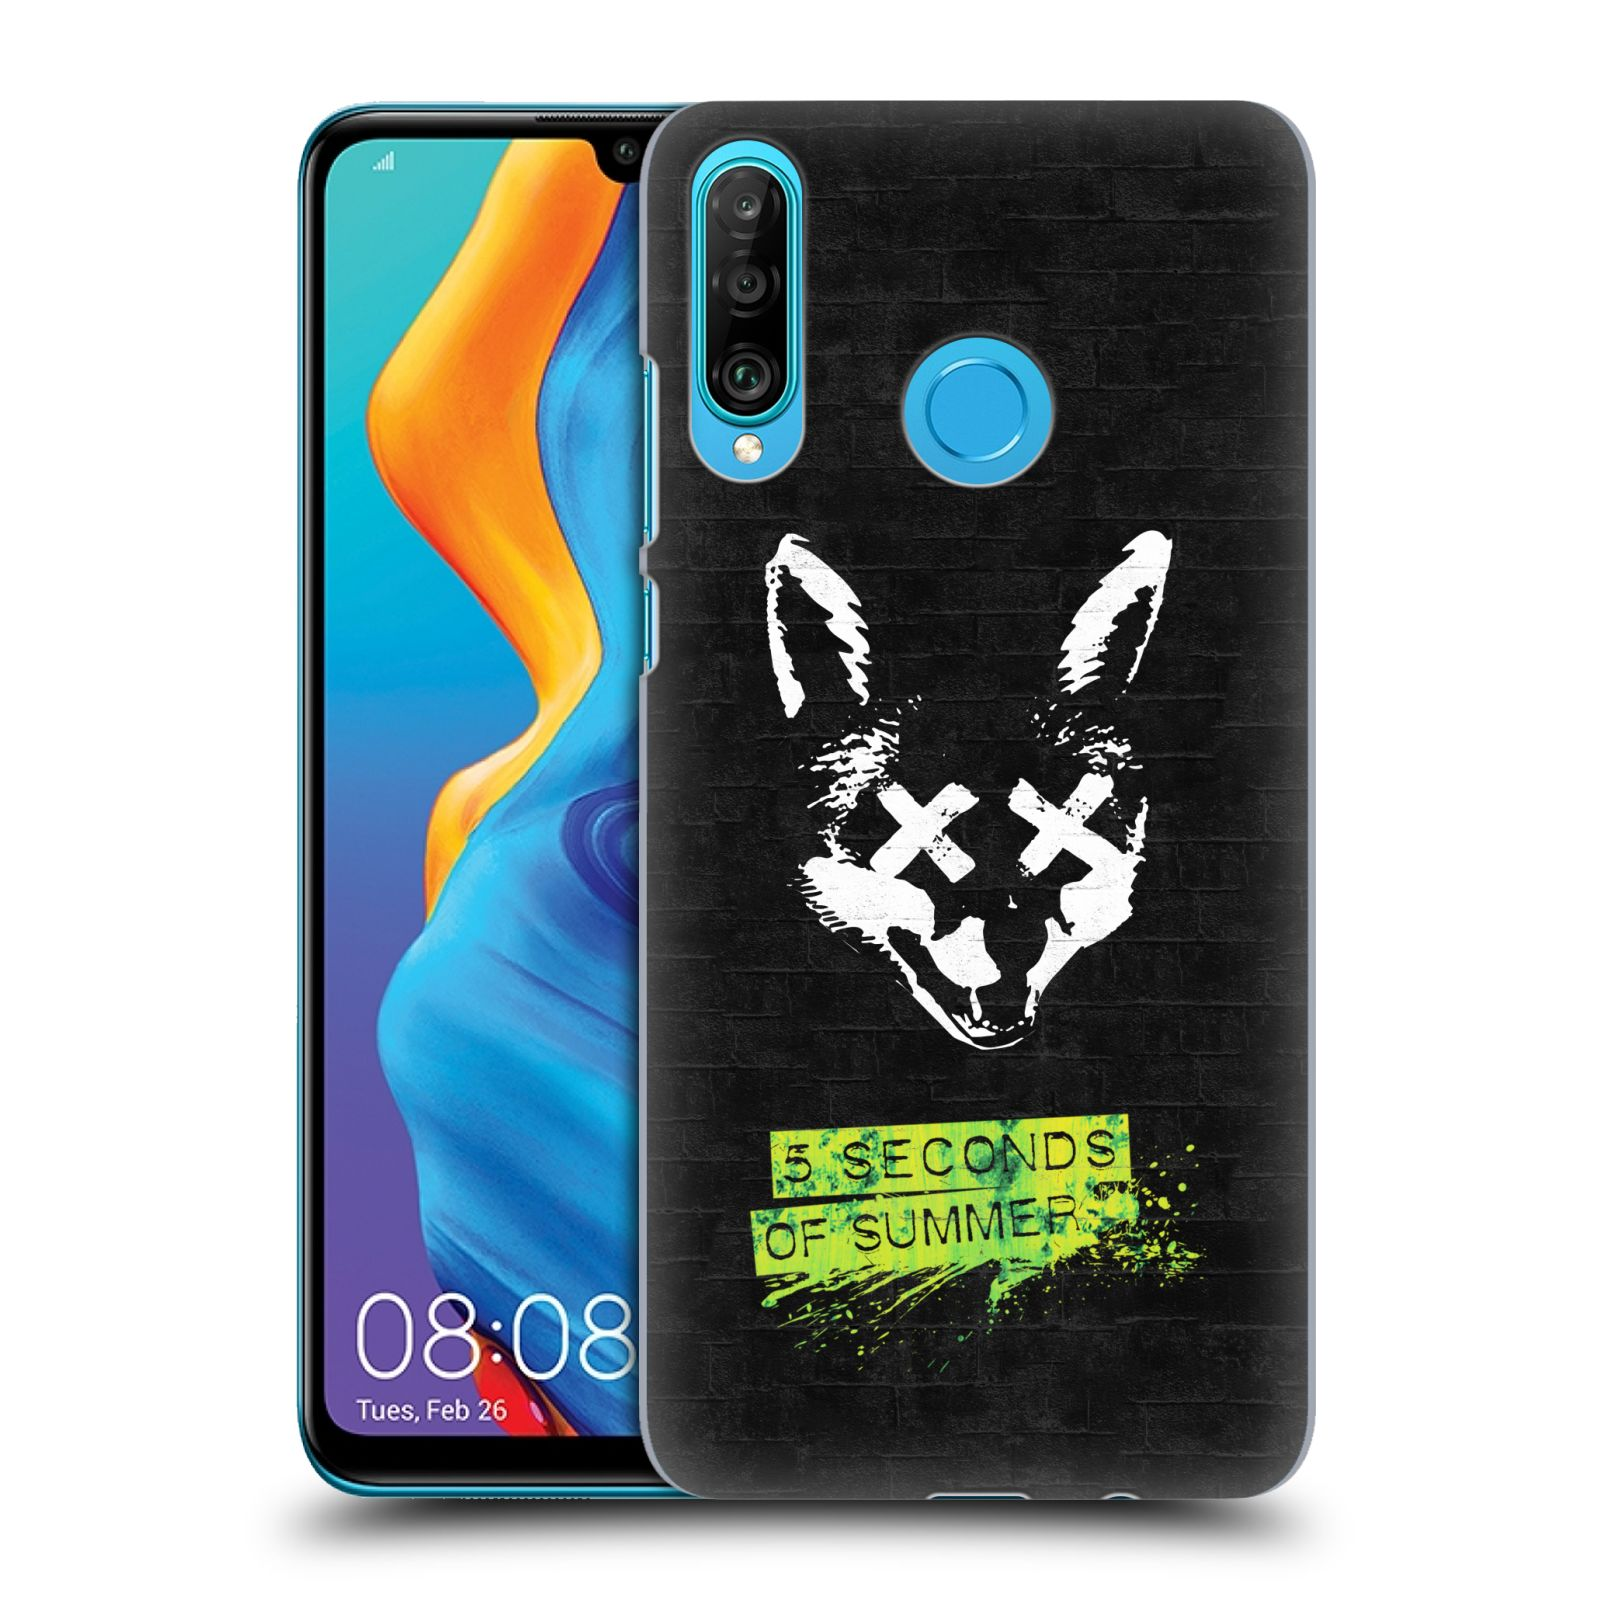 Plastové pouzdro na mobil Huawei P30 Lite - Head Case - 5 Seconds of Summer - Fox